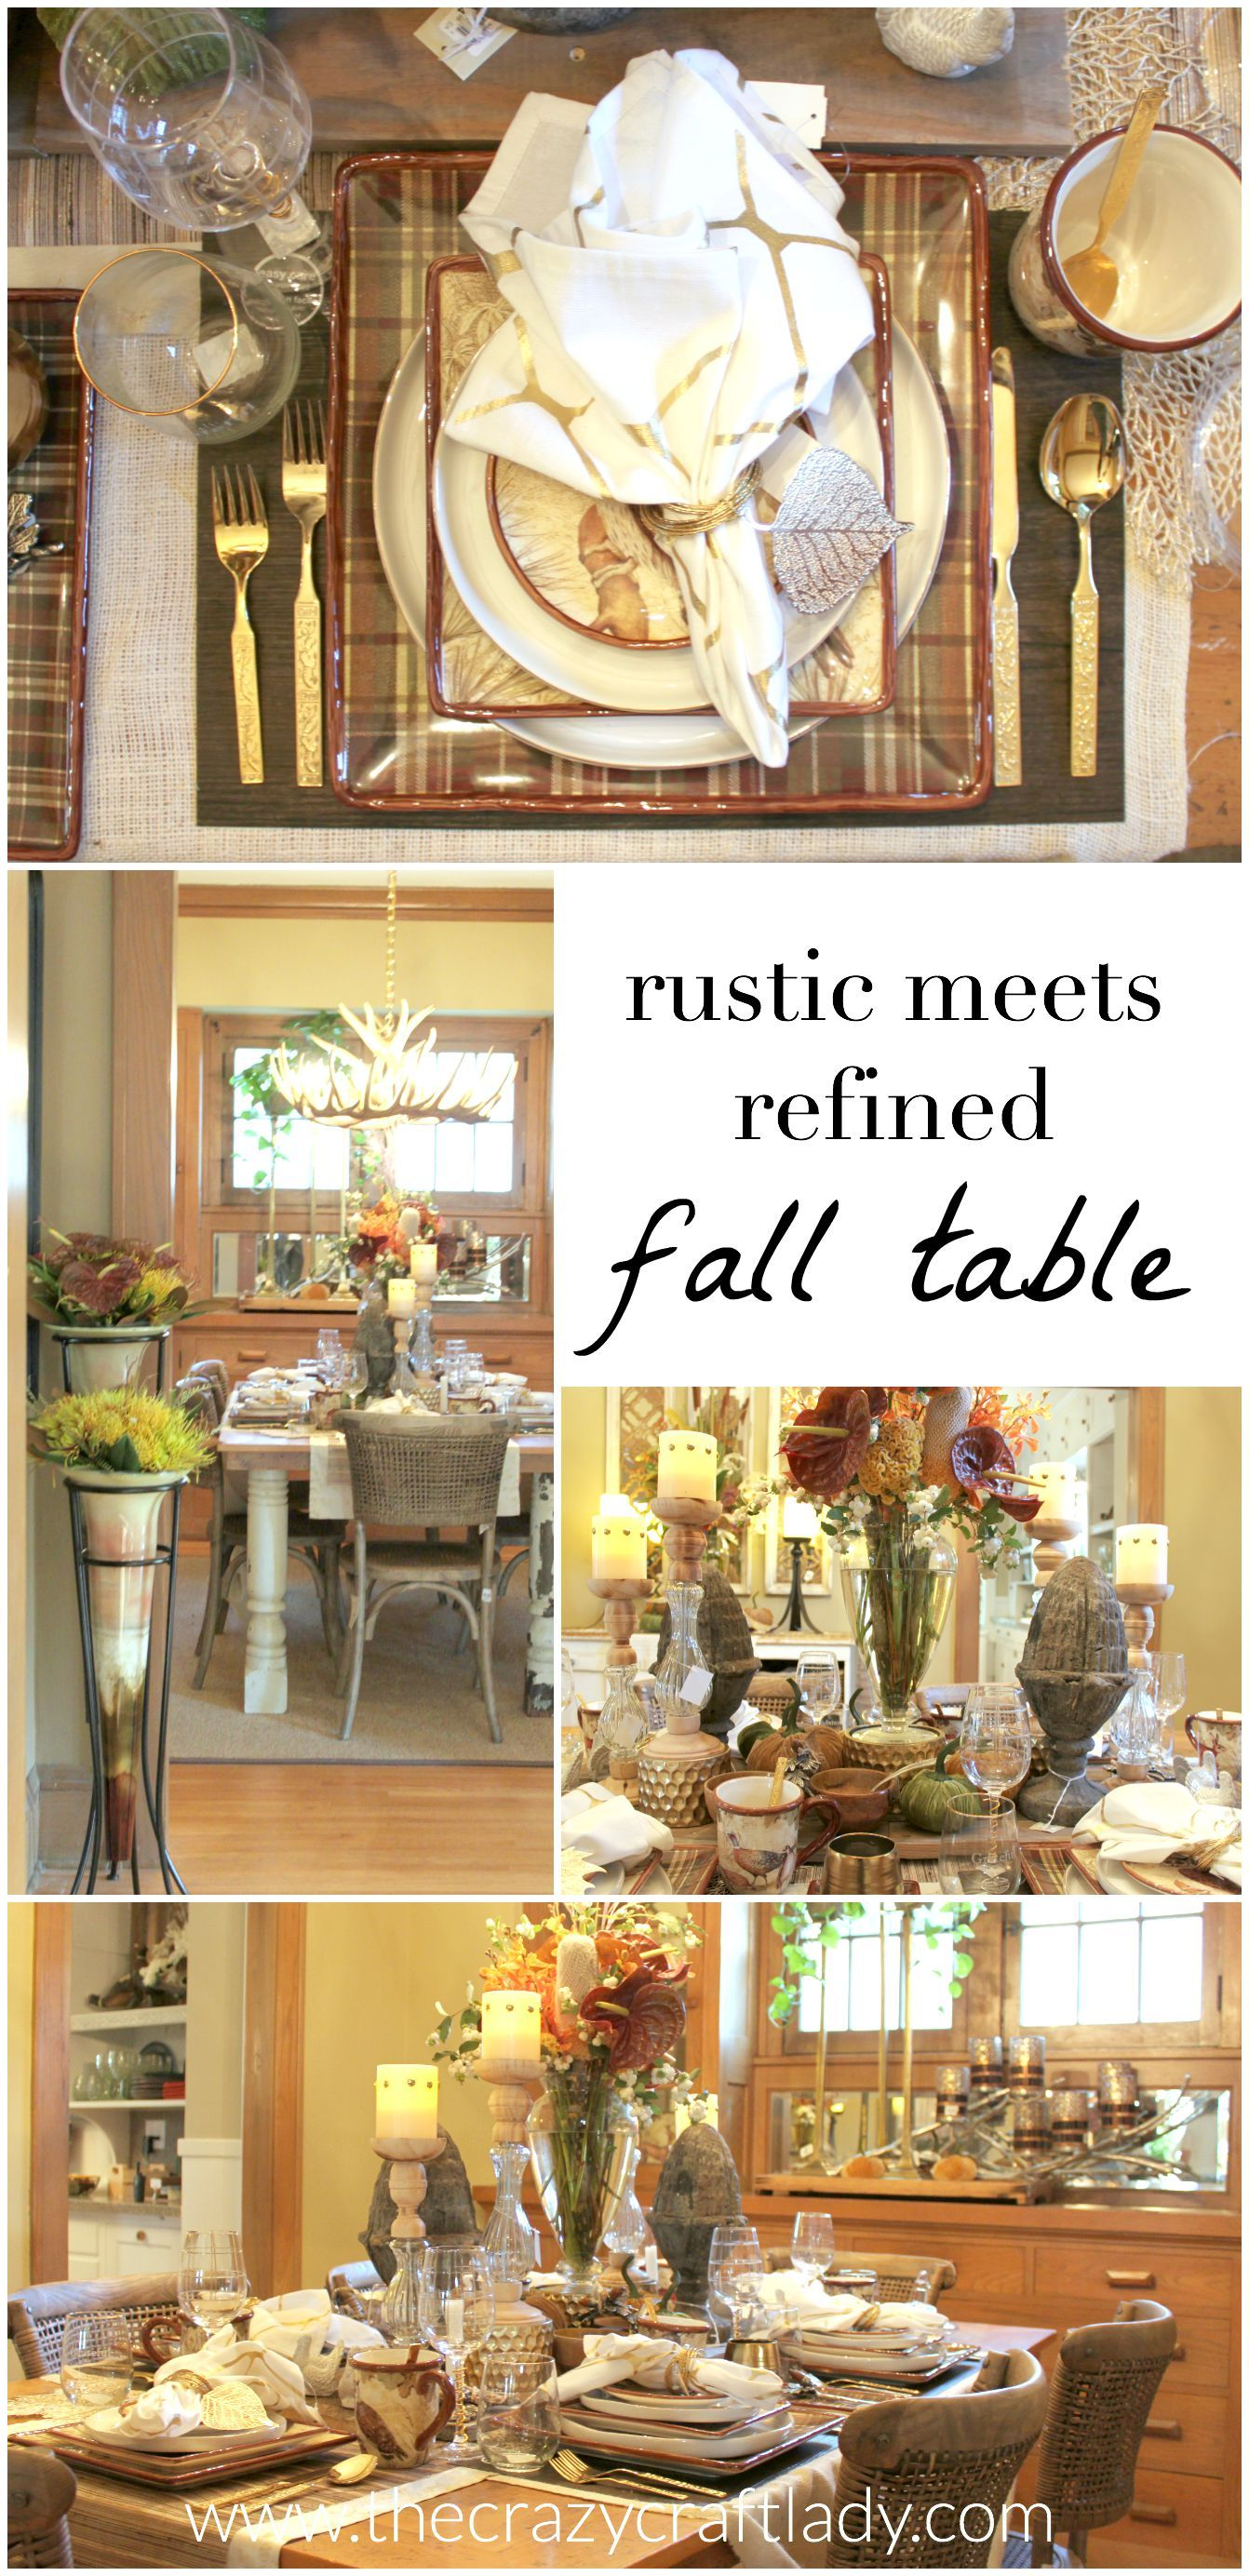 rustic meets refined dining room a rustic dining table layered with fall colors and metallic elements